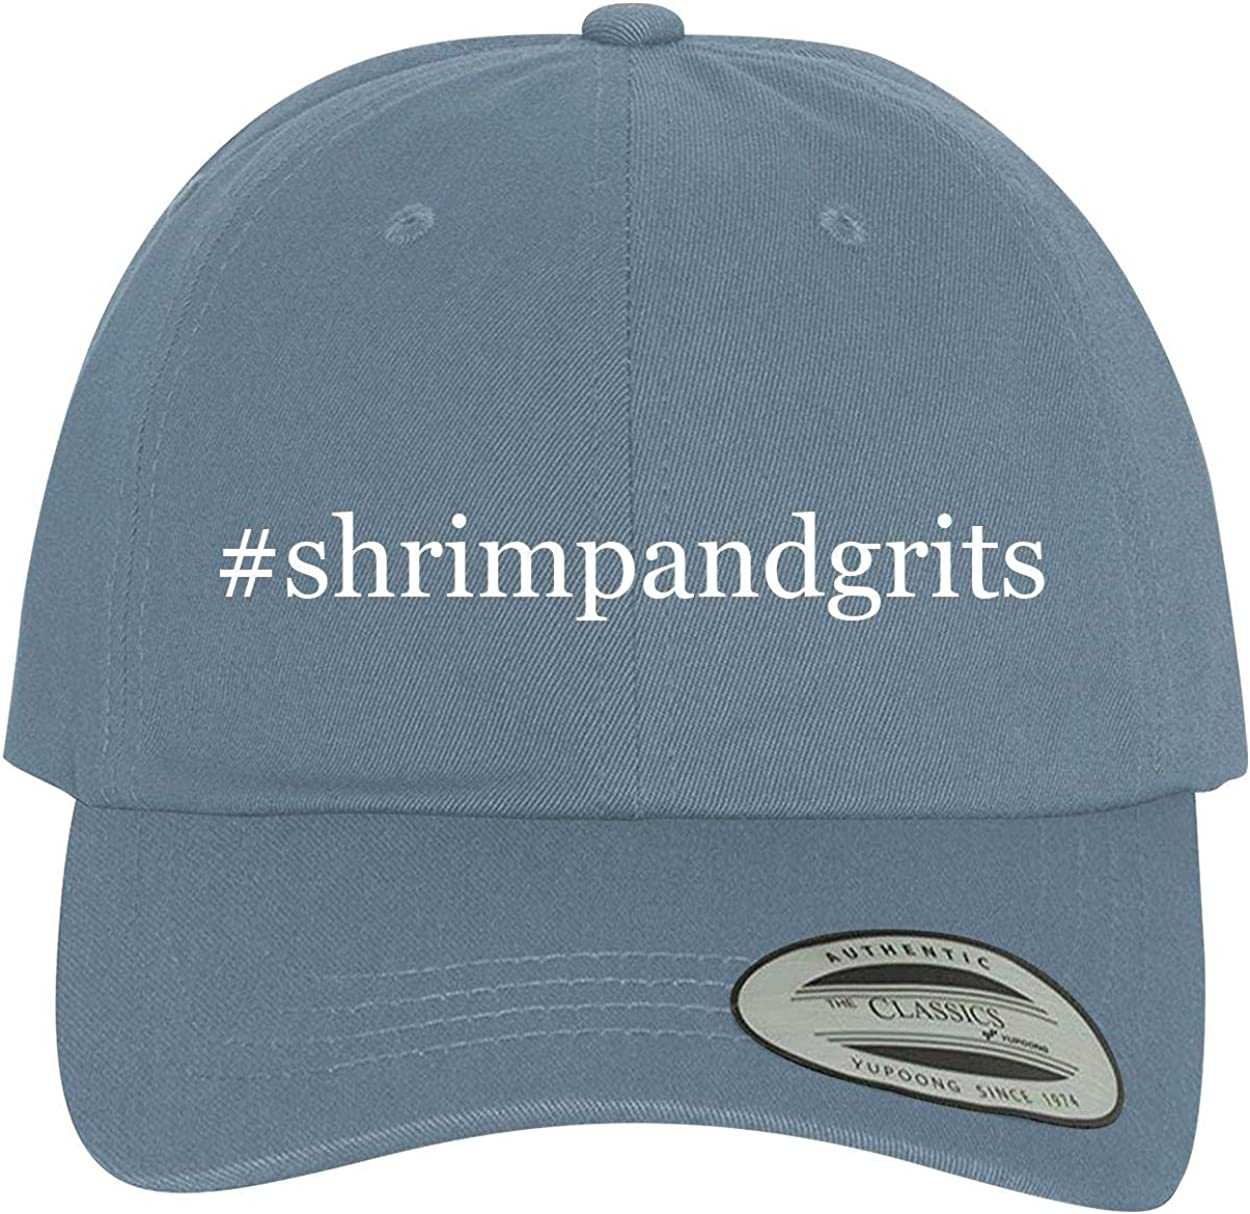 Comfortable Dad Hat Baseball Cap BH Cool Designs #shrimpandgrits